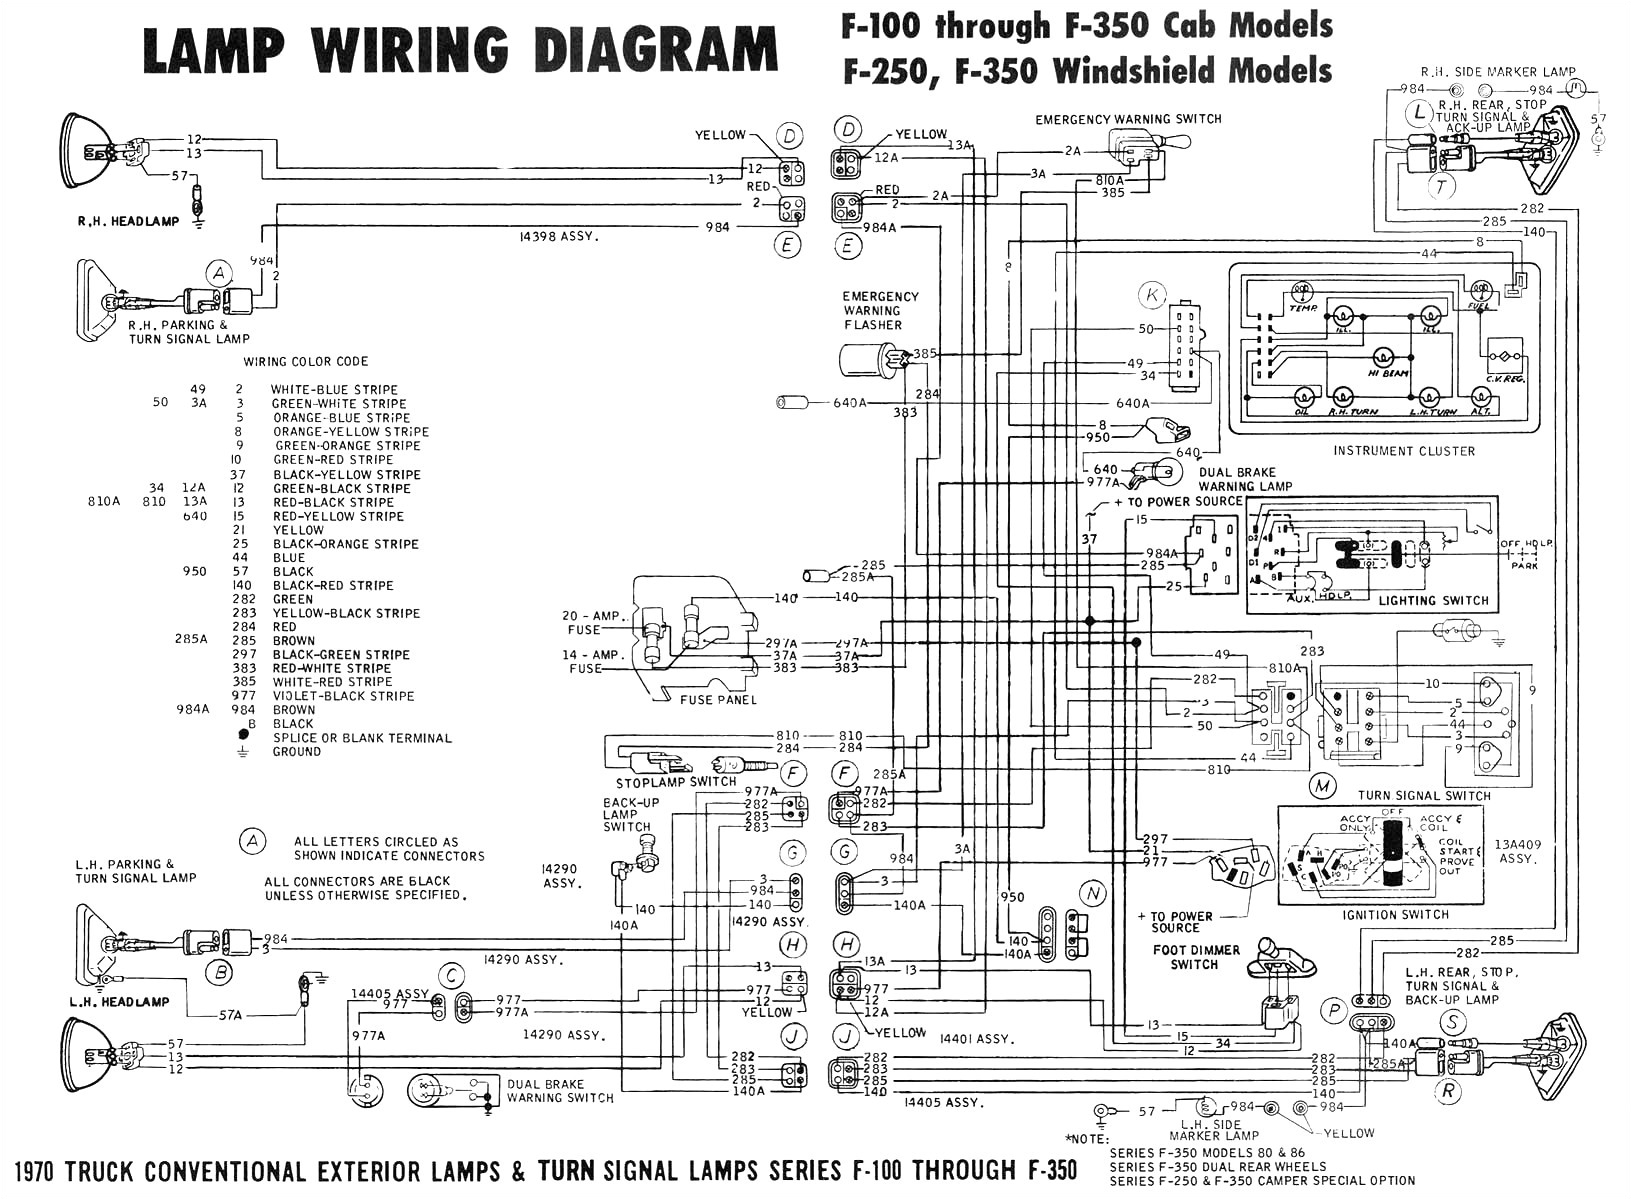 wiring diagram likewise 2002 jeep wrangler heater get free image 2004 jeep grand cherokee turn signal diagram as well jeep wrangler tj